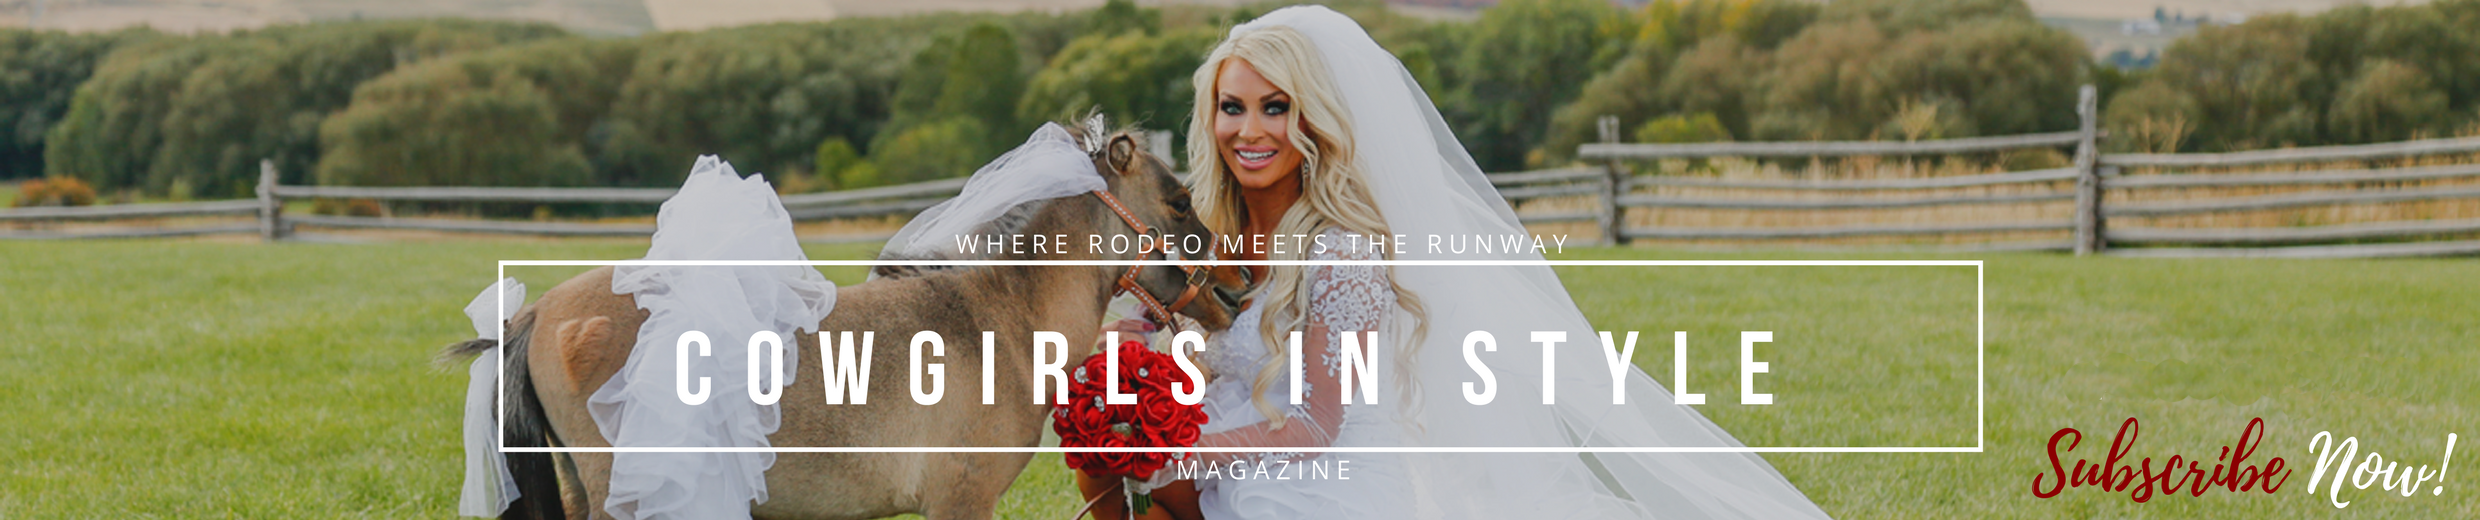 Are You A Cowgirl Boss? - Cowgirls In Style Magazine